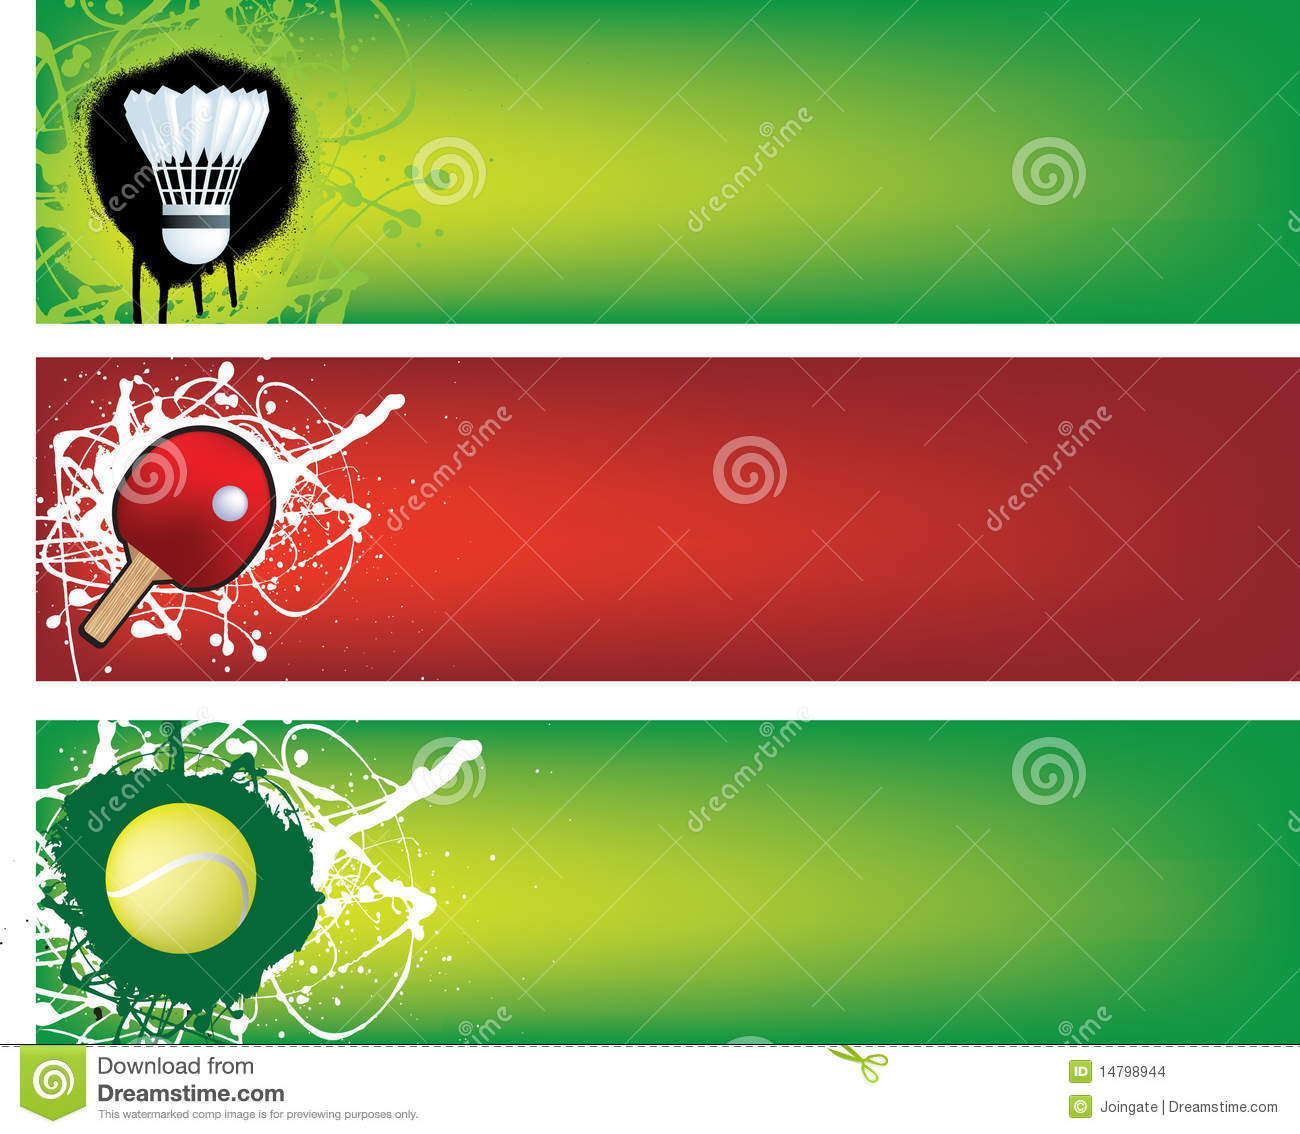 Badminton Table Tennis And Tennis Banners Stock Images